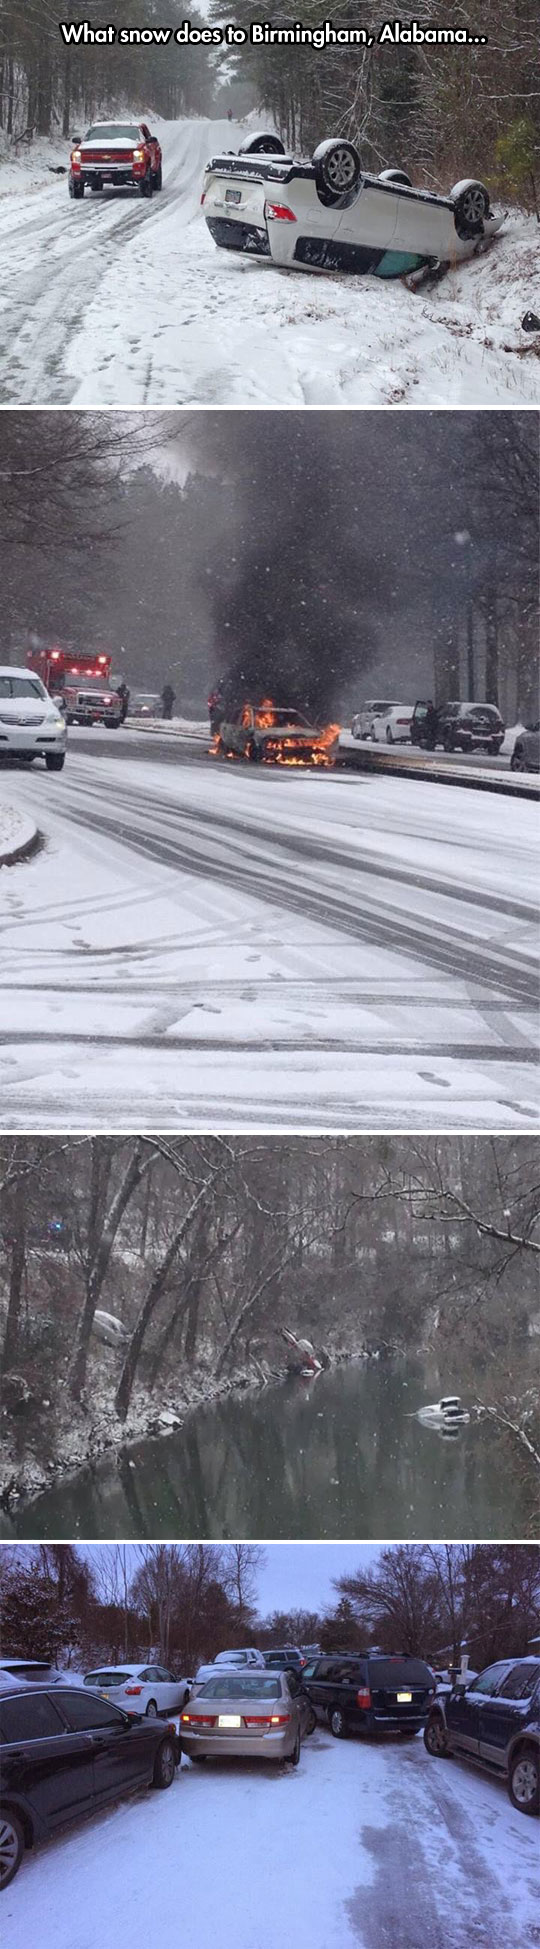 funny-picture-winter-snow-accidents-car-roads